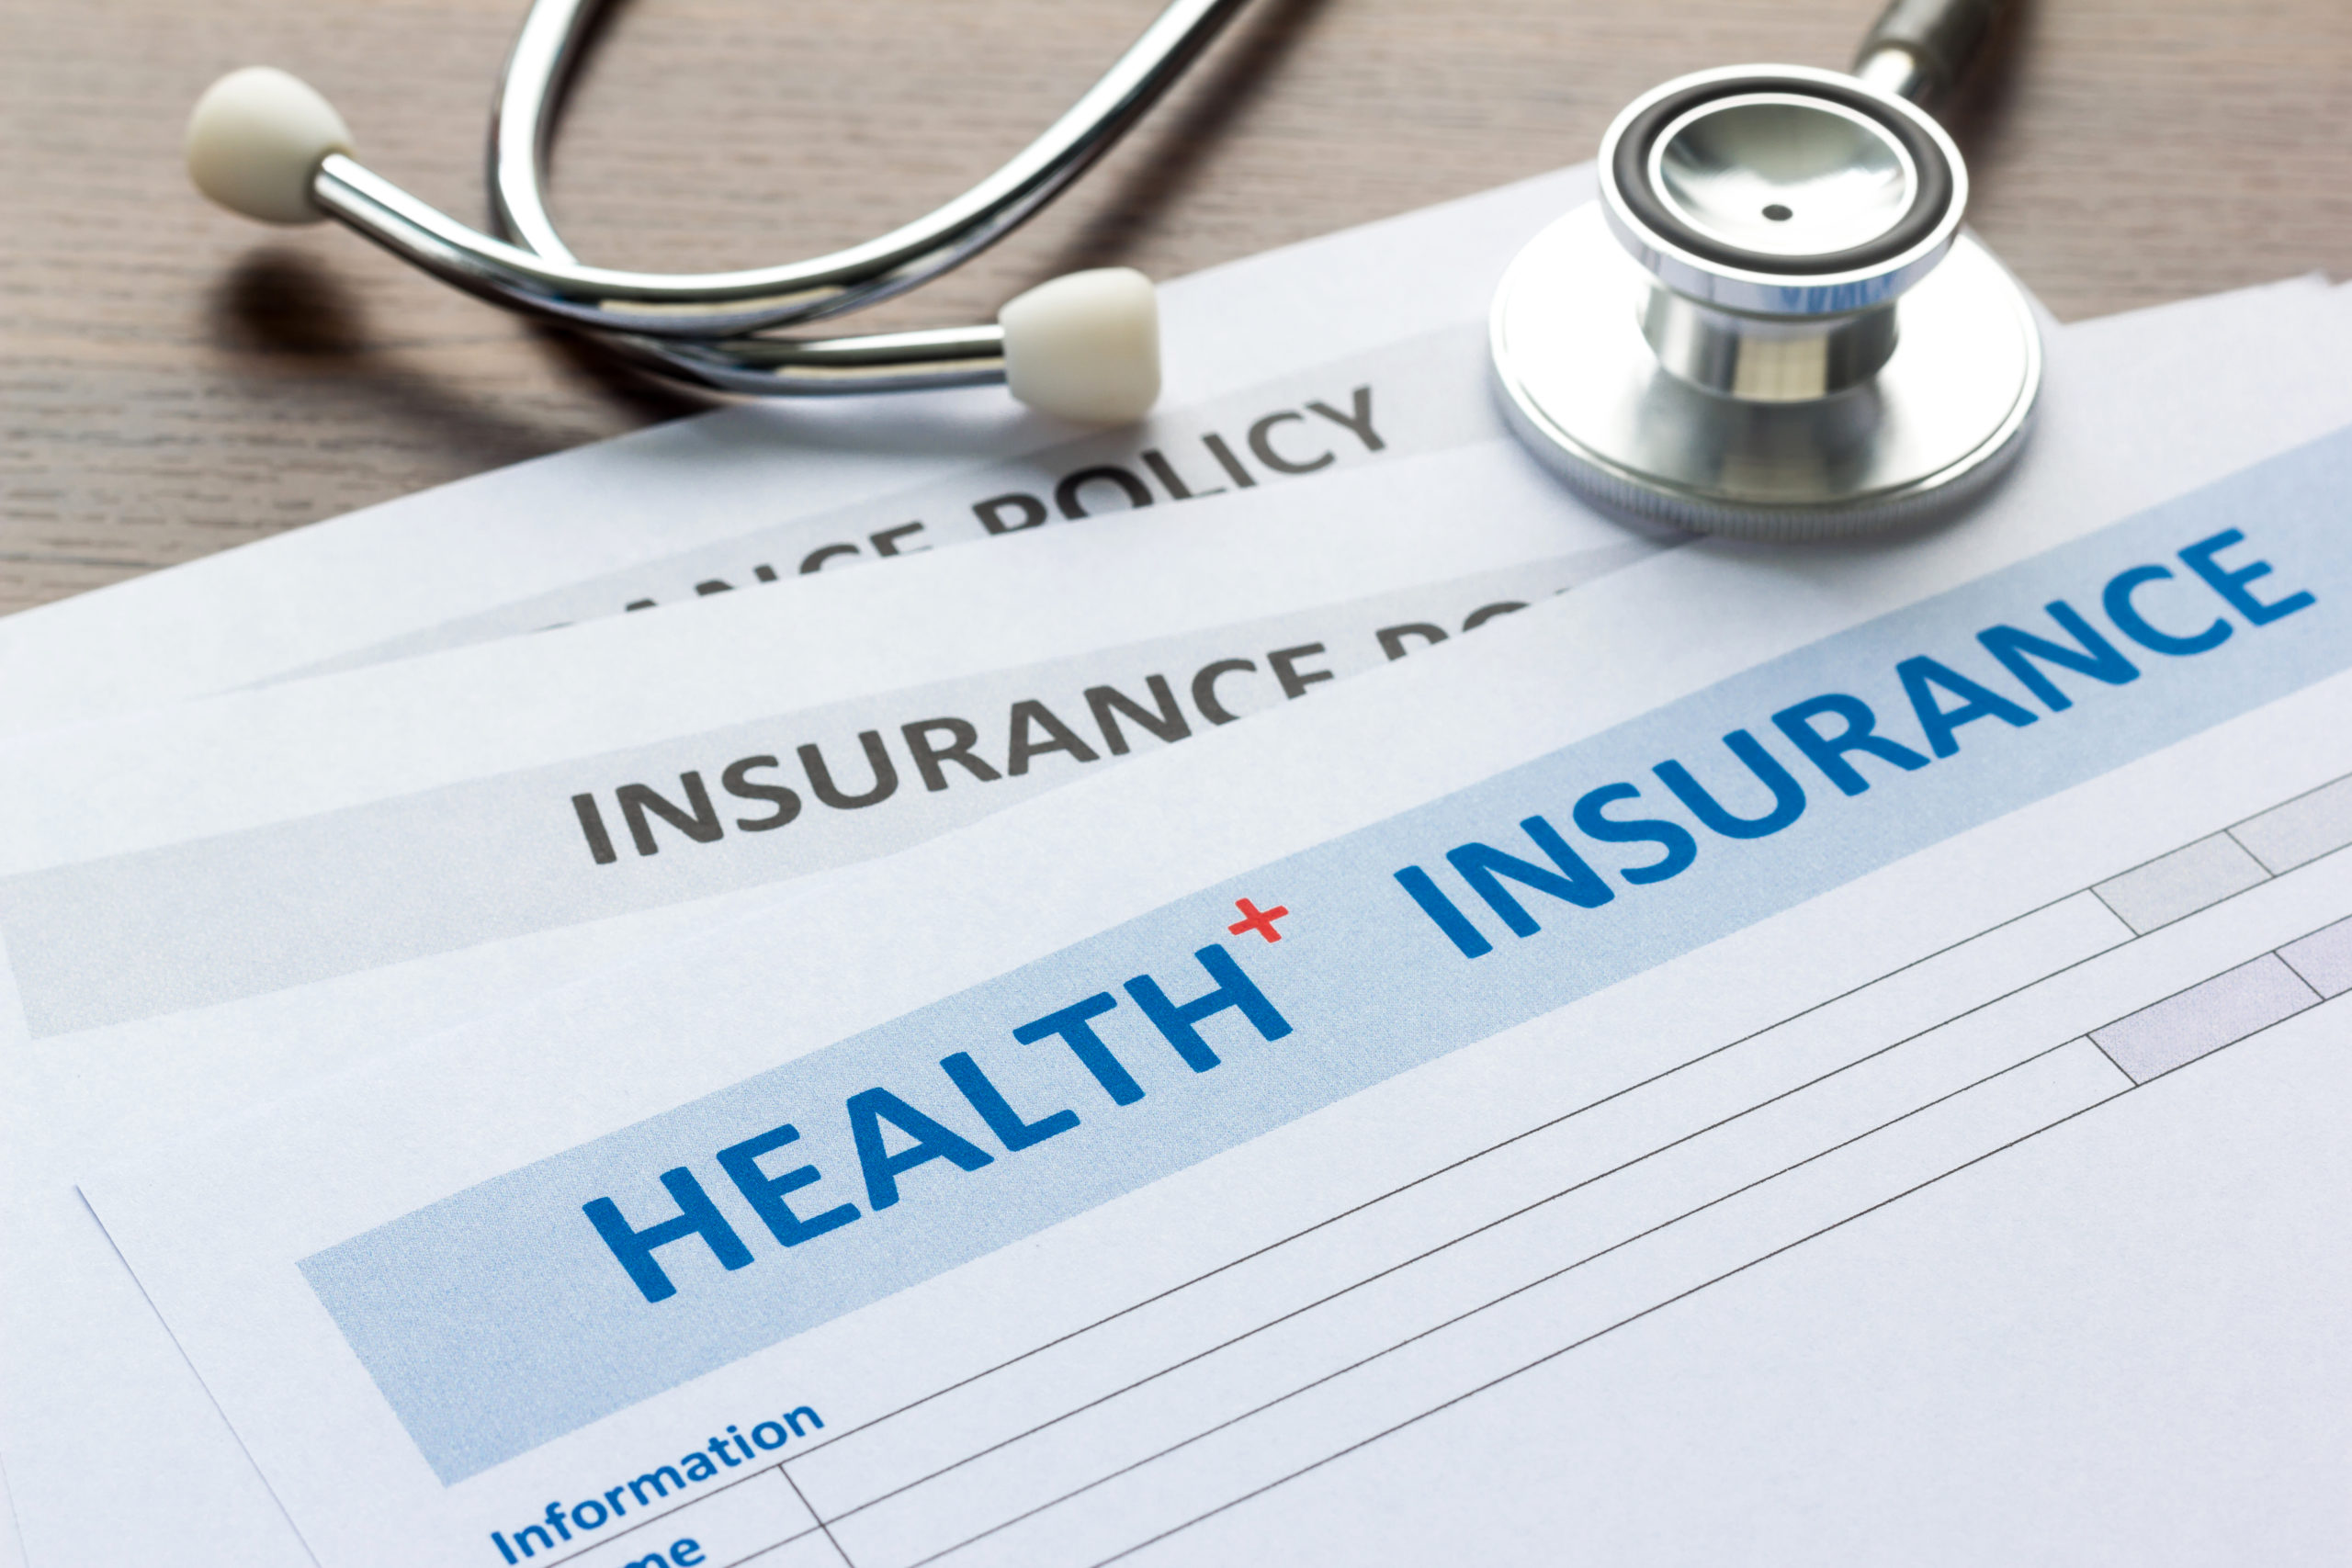 health insurance document and stethoscope